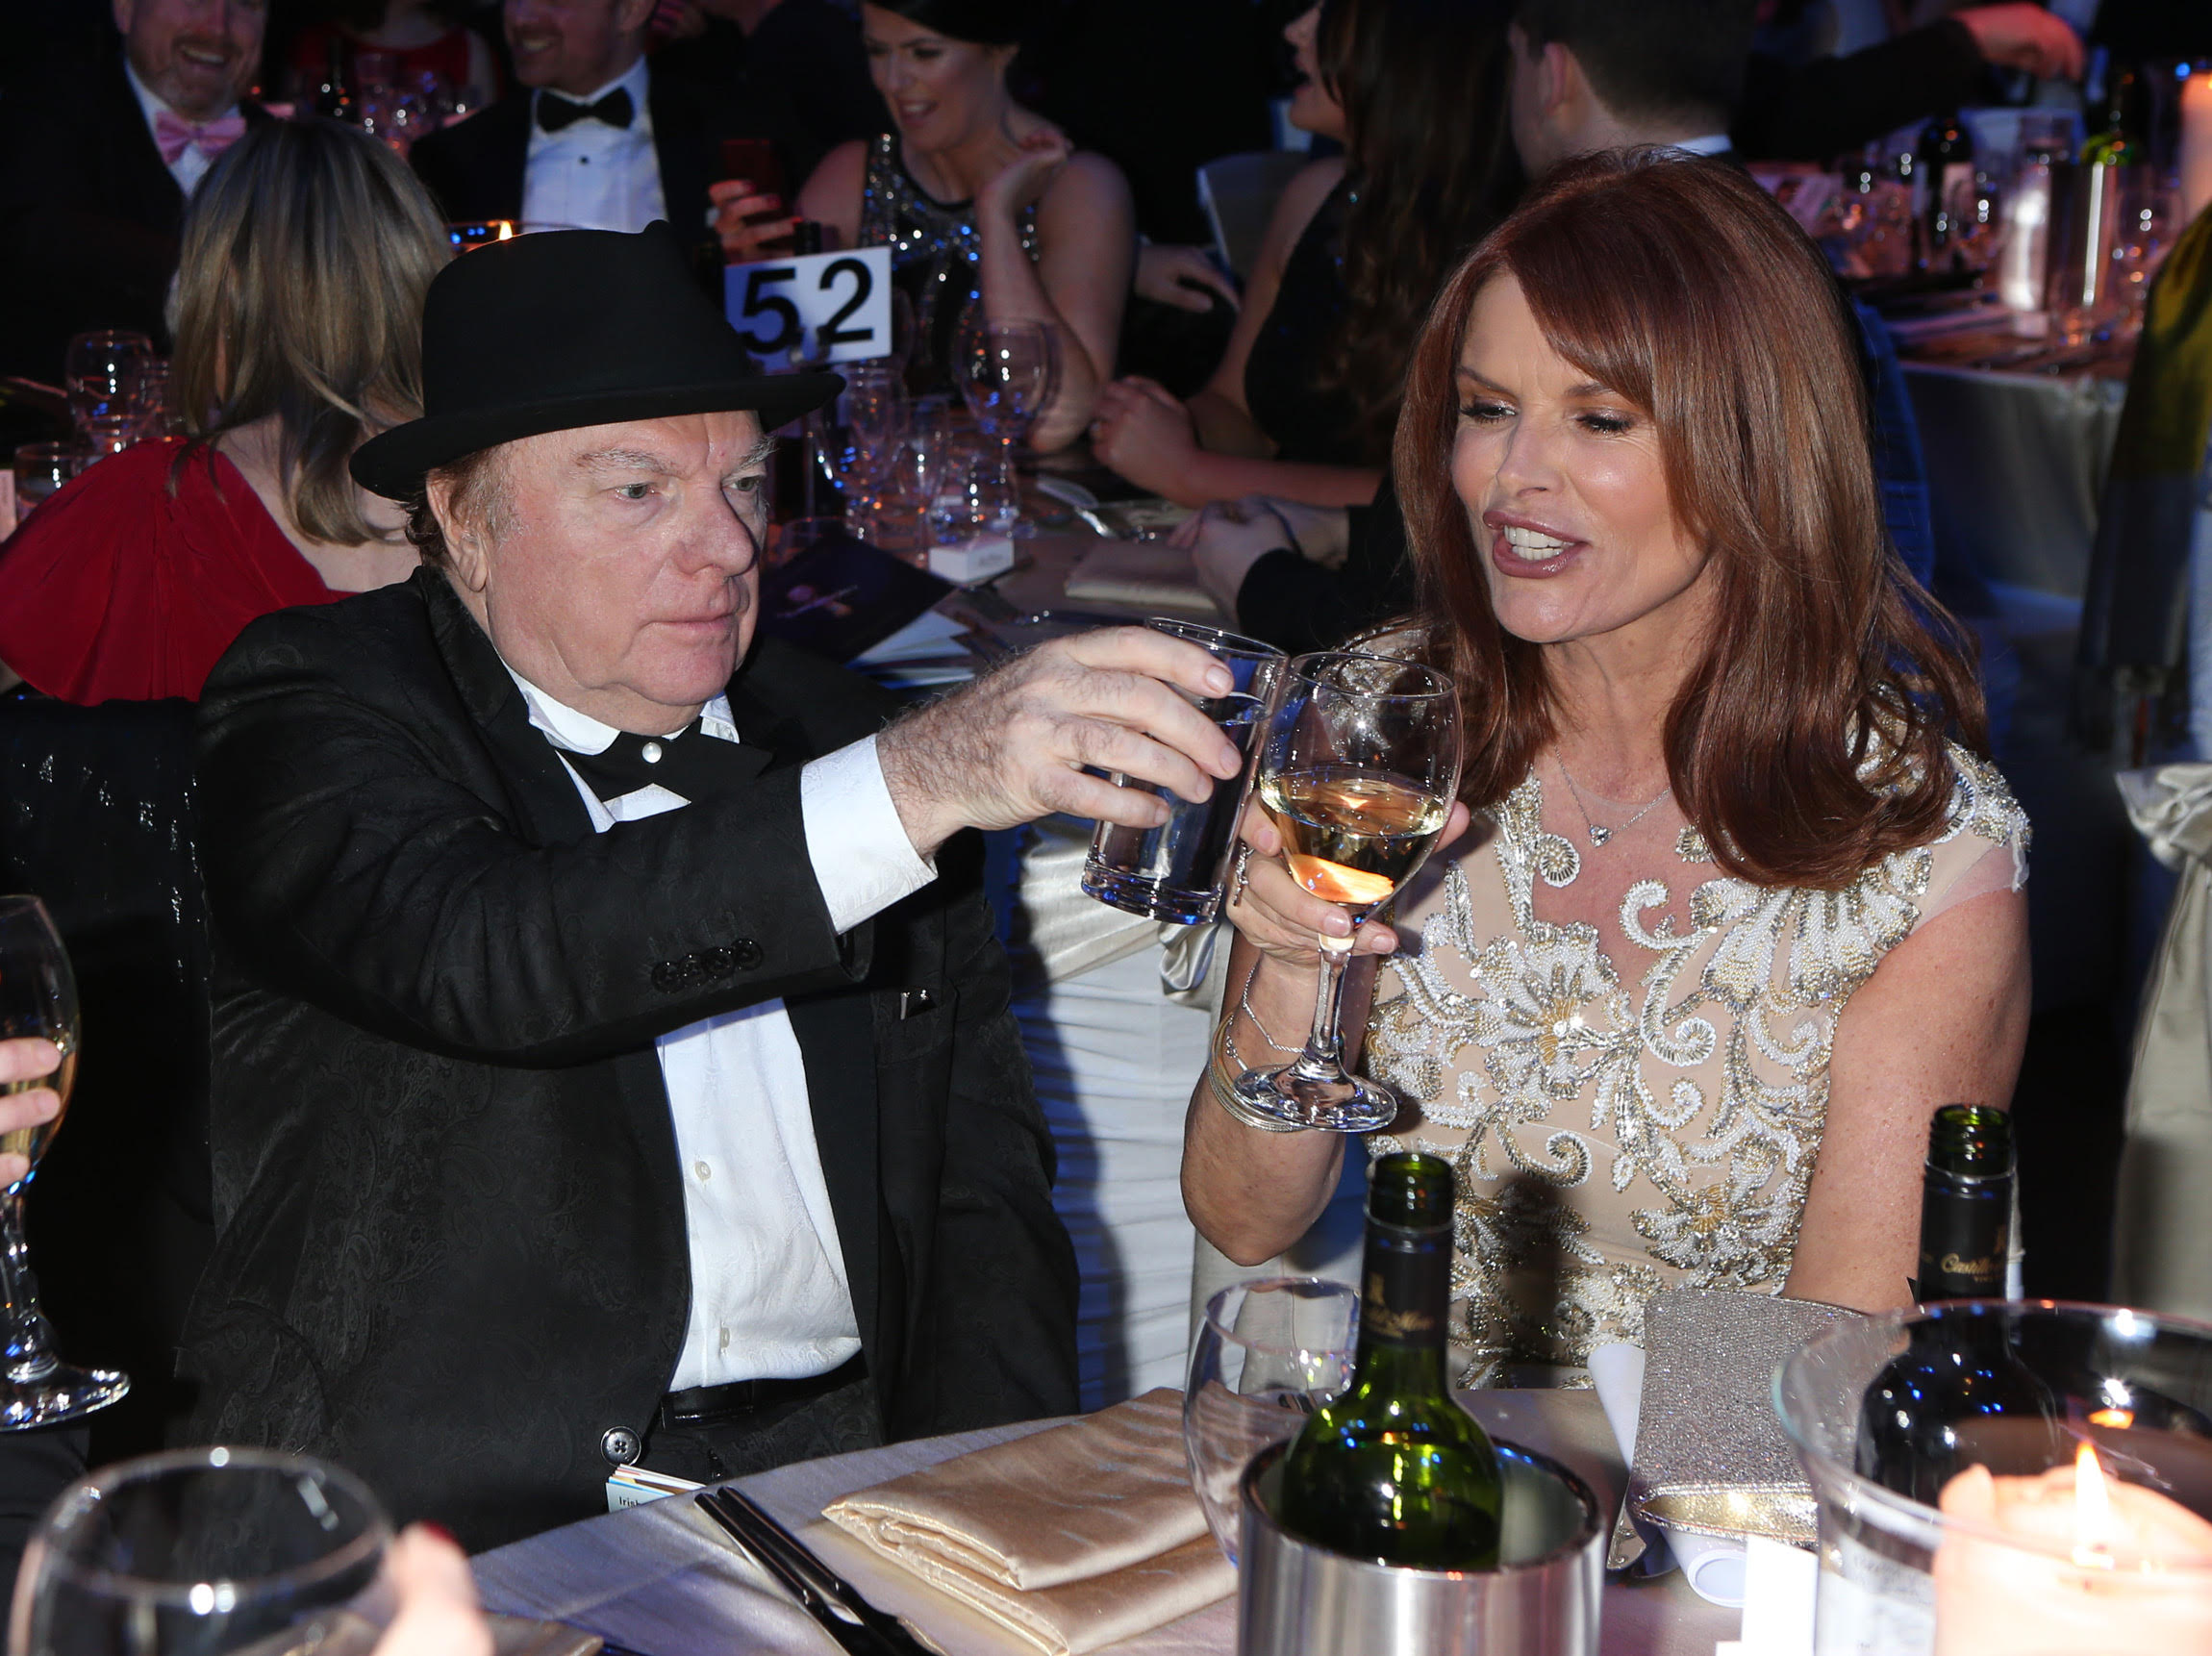 Van Morrison toasts Roma Downey at the IFTA Film and Drama Awards 2016 at the Mansion House, Dublin. (Photo by Kyran O'Brien)